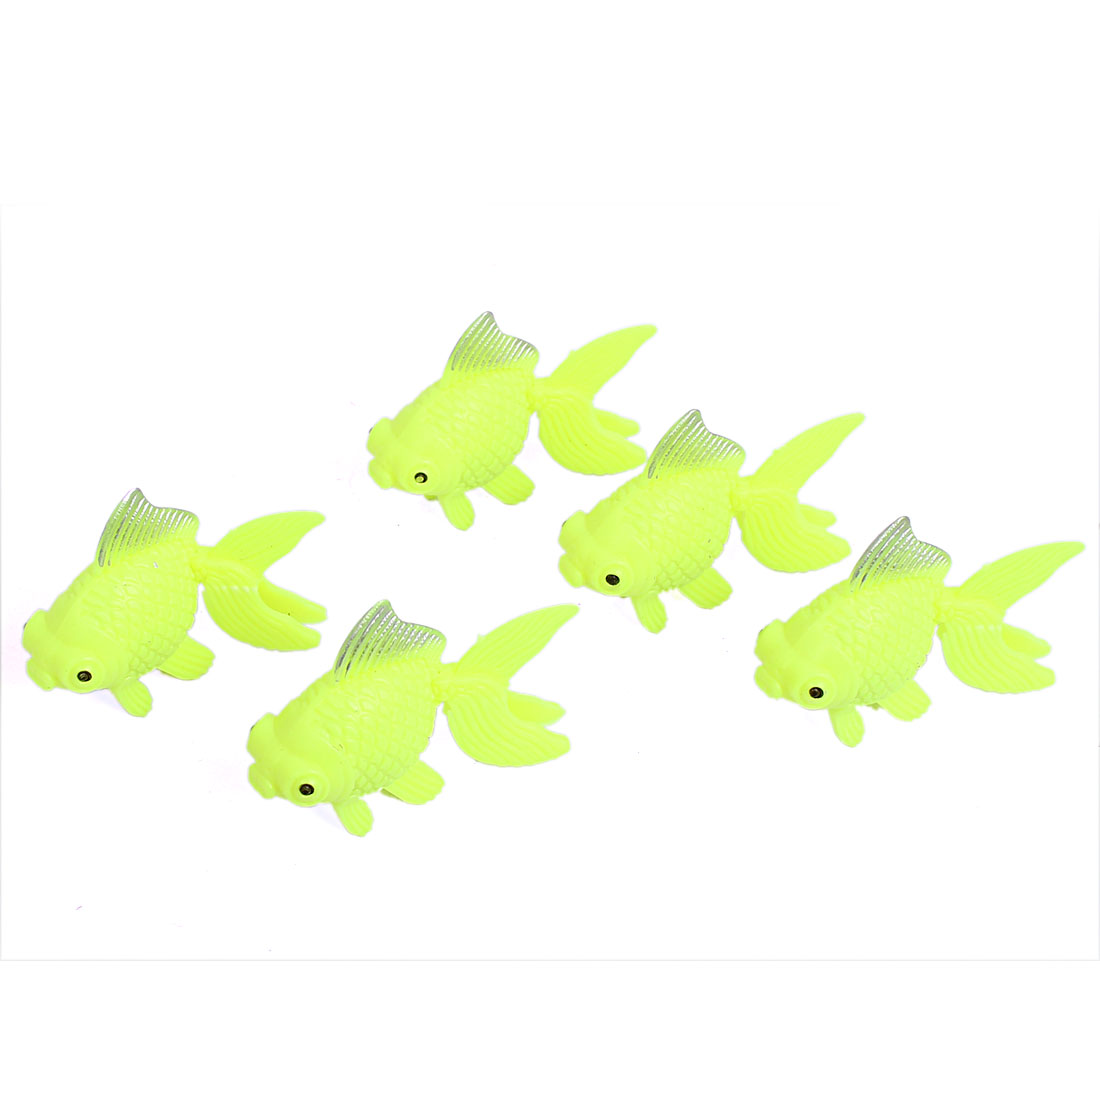 Fishbowl Aquascaping Plastic Artifical Aquarium Swing Tail Goldfish Fish Ornament 5pcs